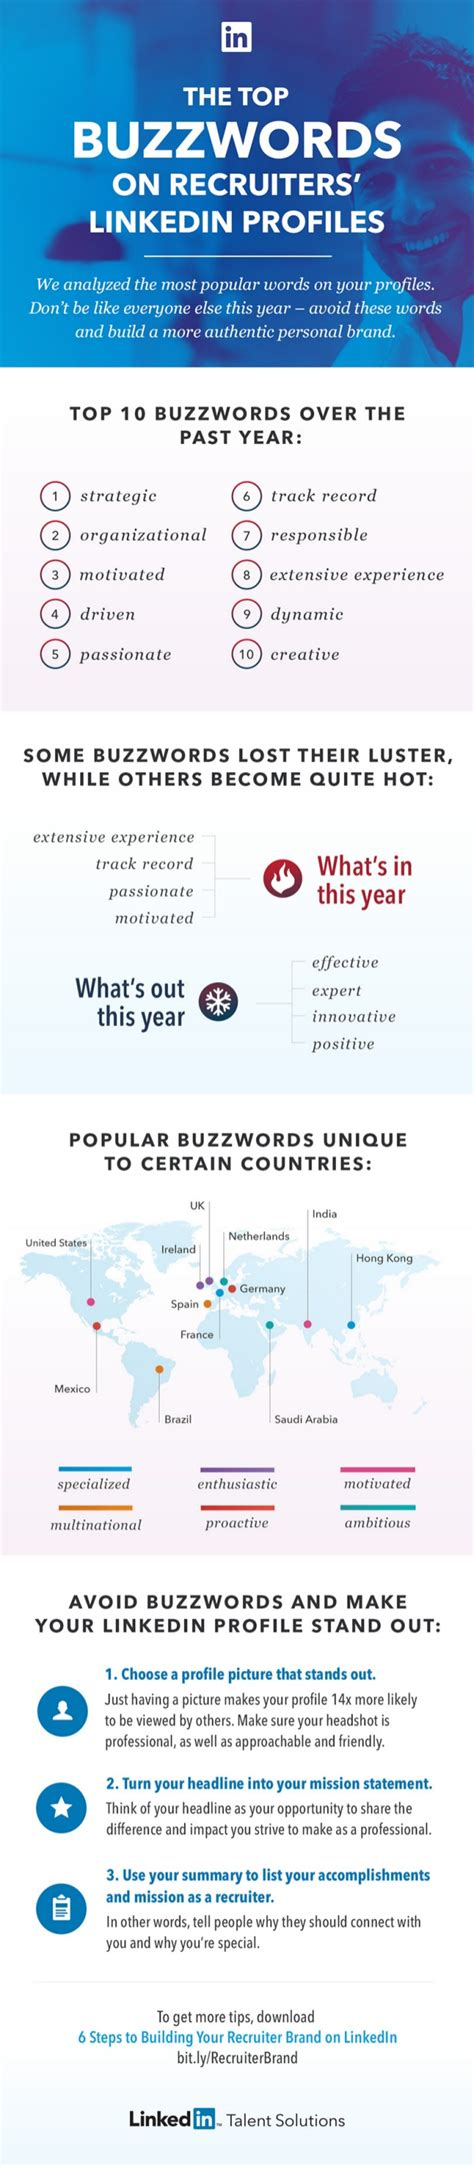 top 10 buzzwords overused by recruiters in 2014 infographic